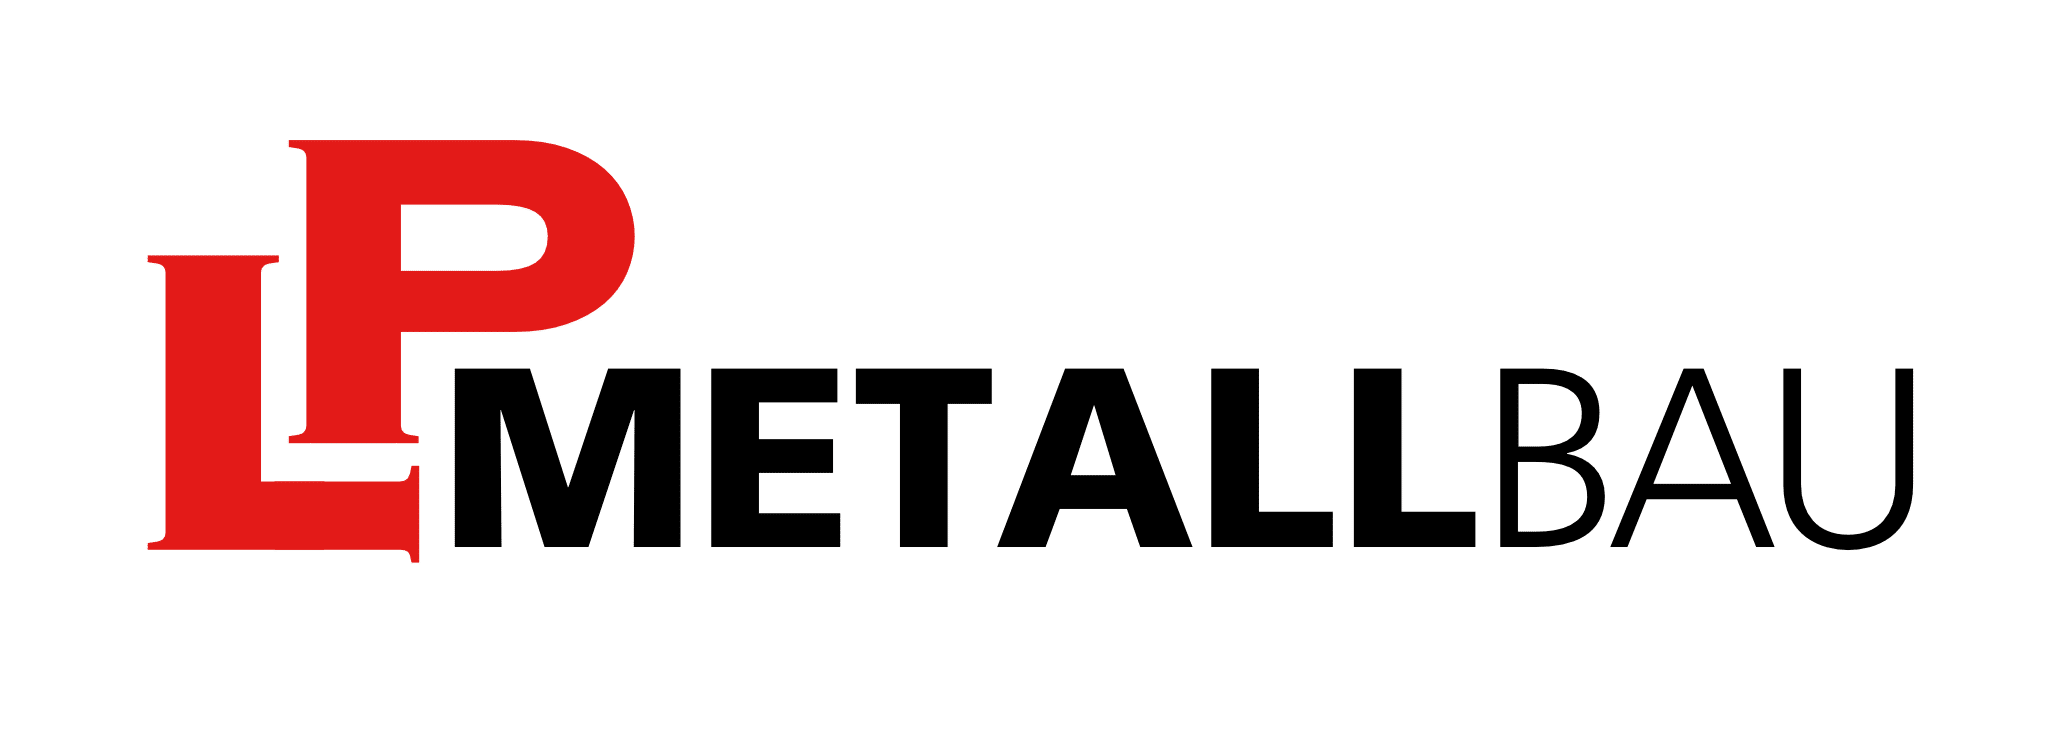 lp-metallbau